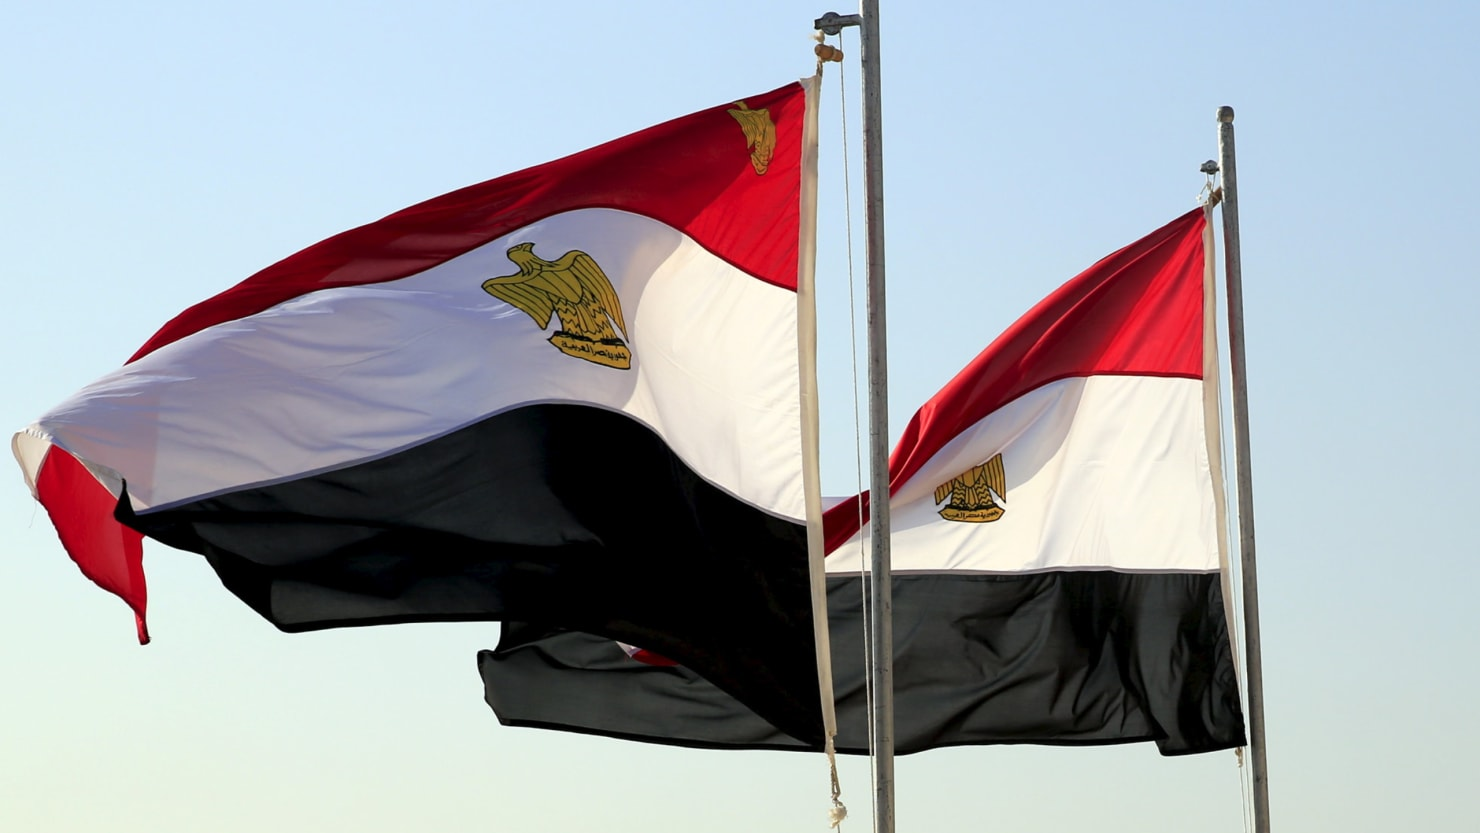 New York Times Reporter David Kirkpatrick Held 'Without Explanation' in Egypt